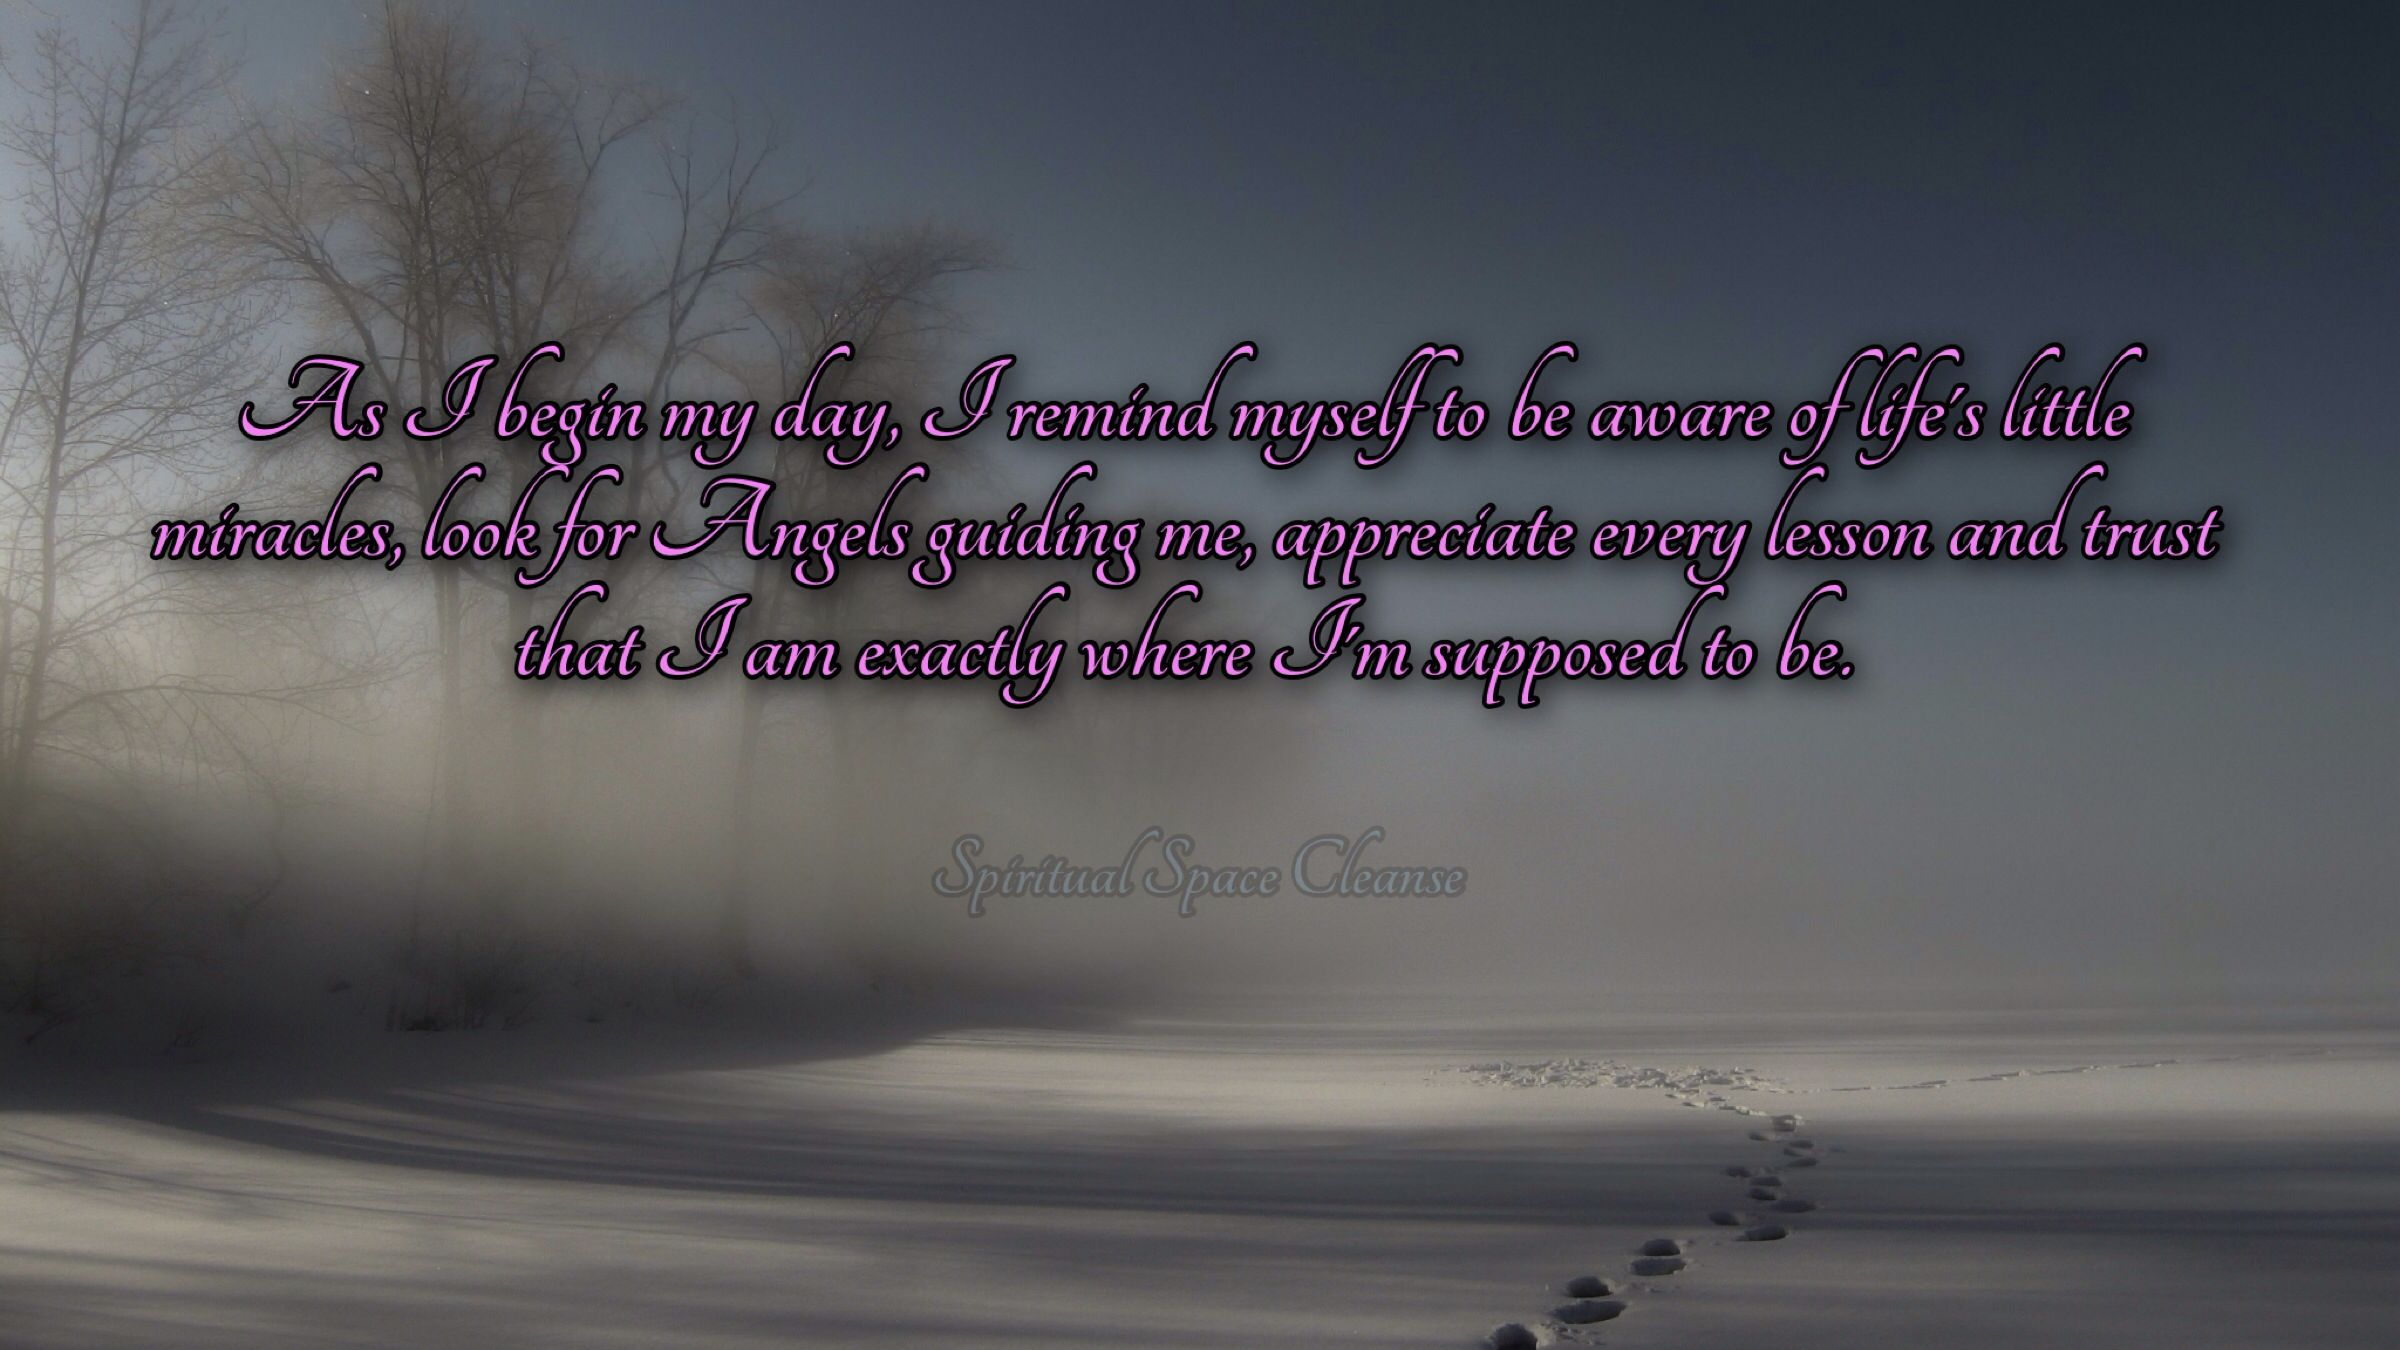 I am where I am supposed to be Quotes to live by, Lesson